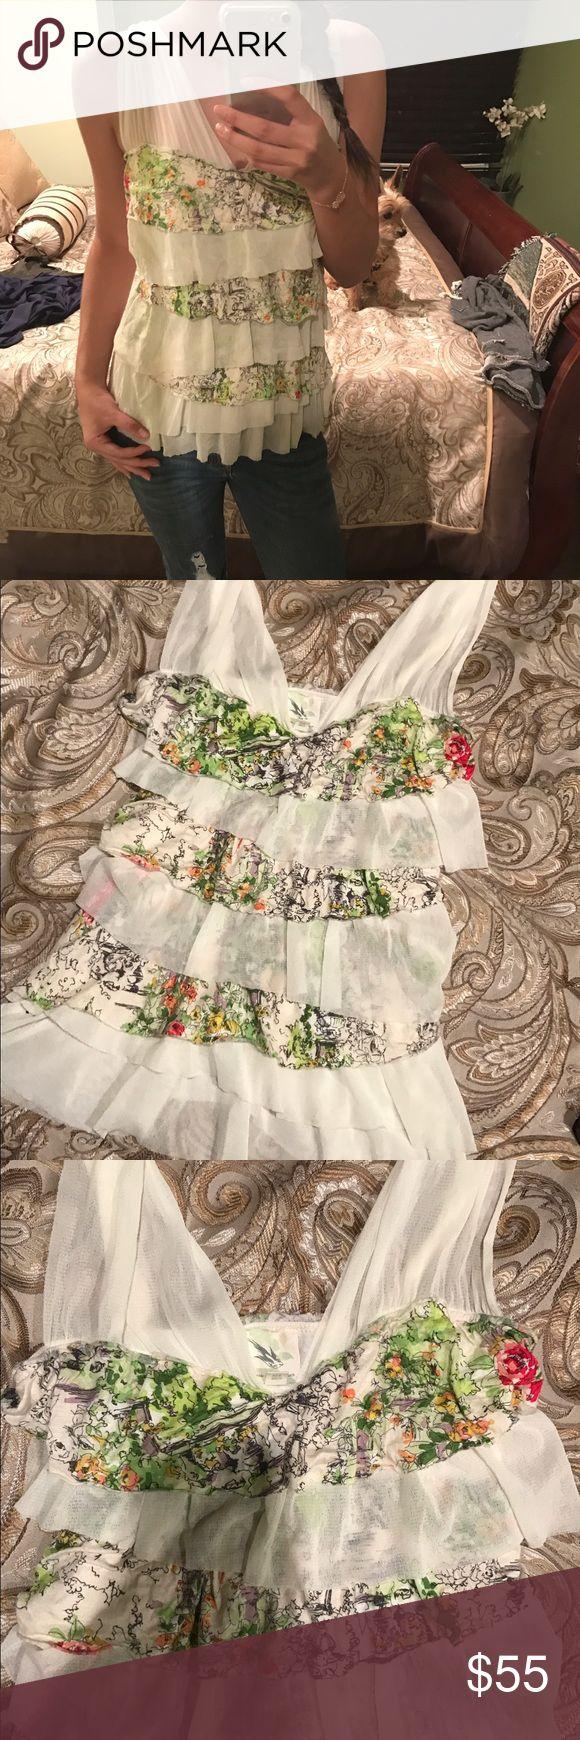 🌷GARDEN RUFFLED TIERED TOP🌷 So sad to see this gorgeous top go! It has ruffles with cute designs and is a v neck style. Super cute and form fitting! Looks great on! Very comfortable and soft material! No piling , tears , or stains! In excellent condition! Made in San Francisco by Anthropologie ships next day! Fits an xs-s Anthropologie Tops